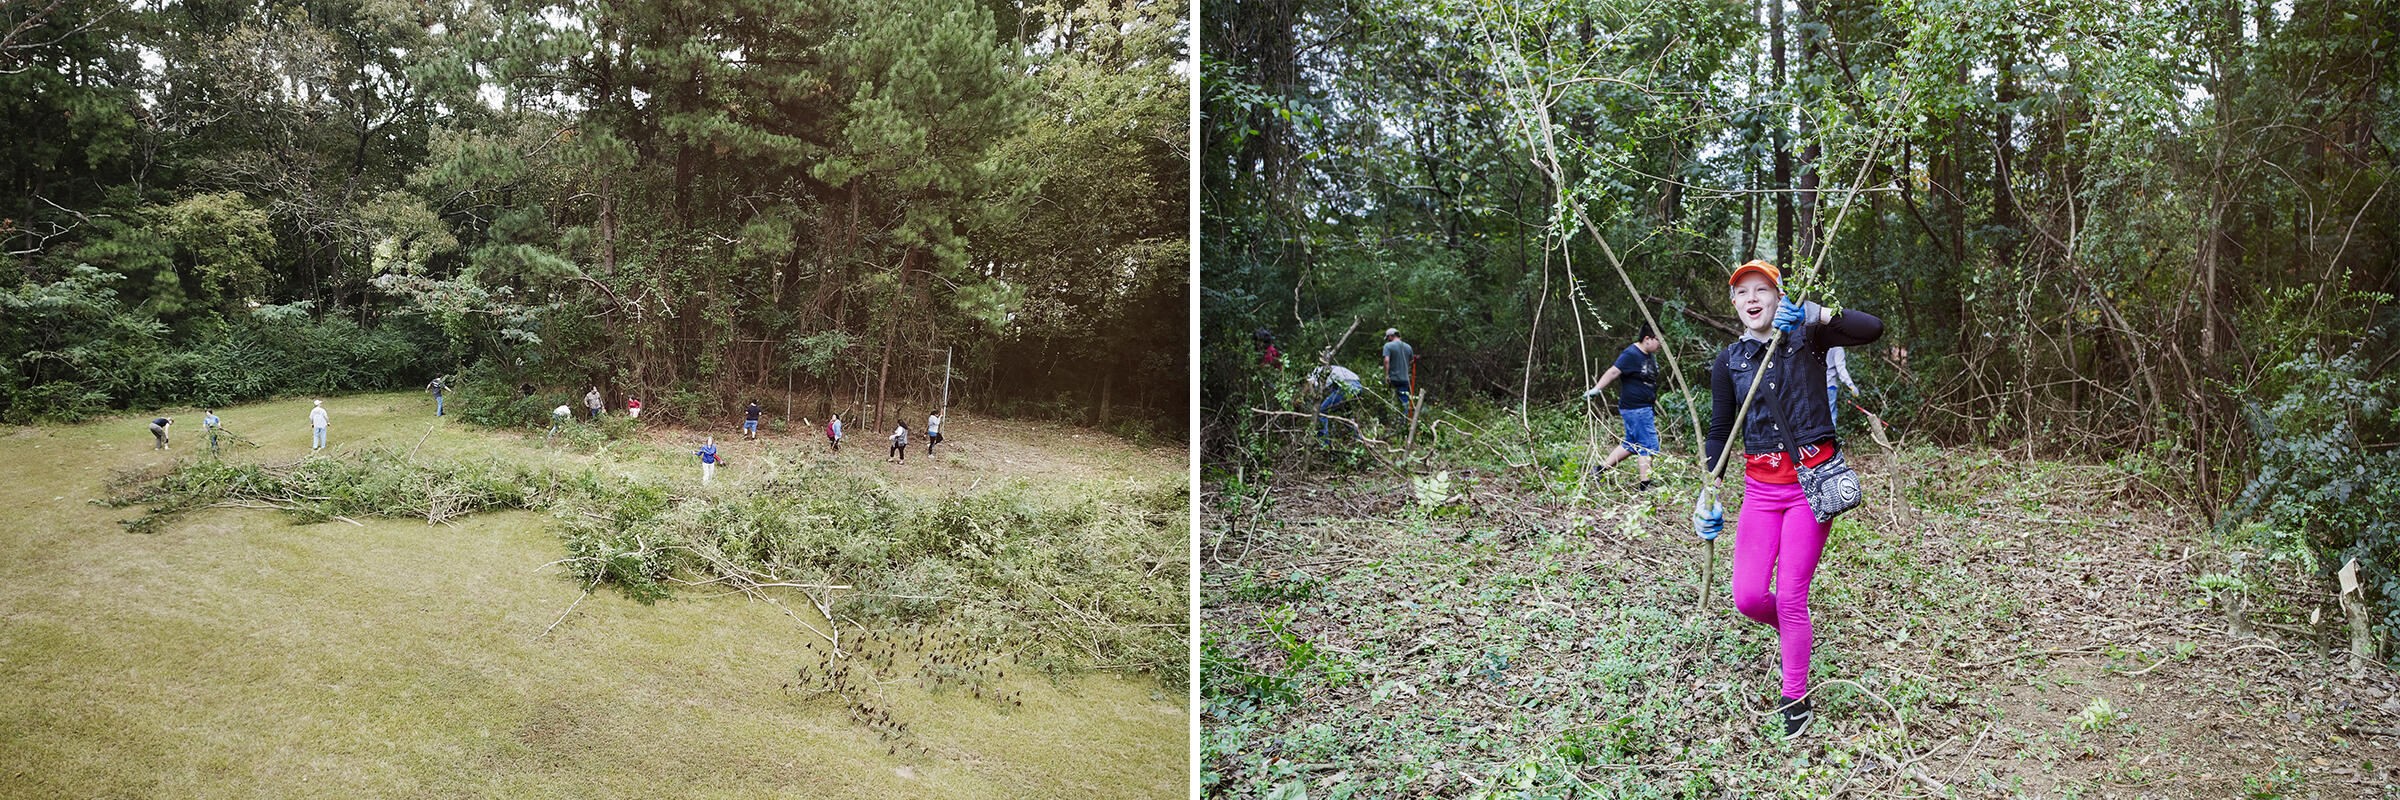 From left: Volunteers clear out Chinese privet, an invasive hedge, from the north side of campus during an event last fall; a student drags felled plants from the trail. Mike Fernandez/Audubon